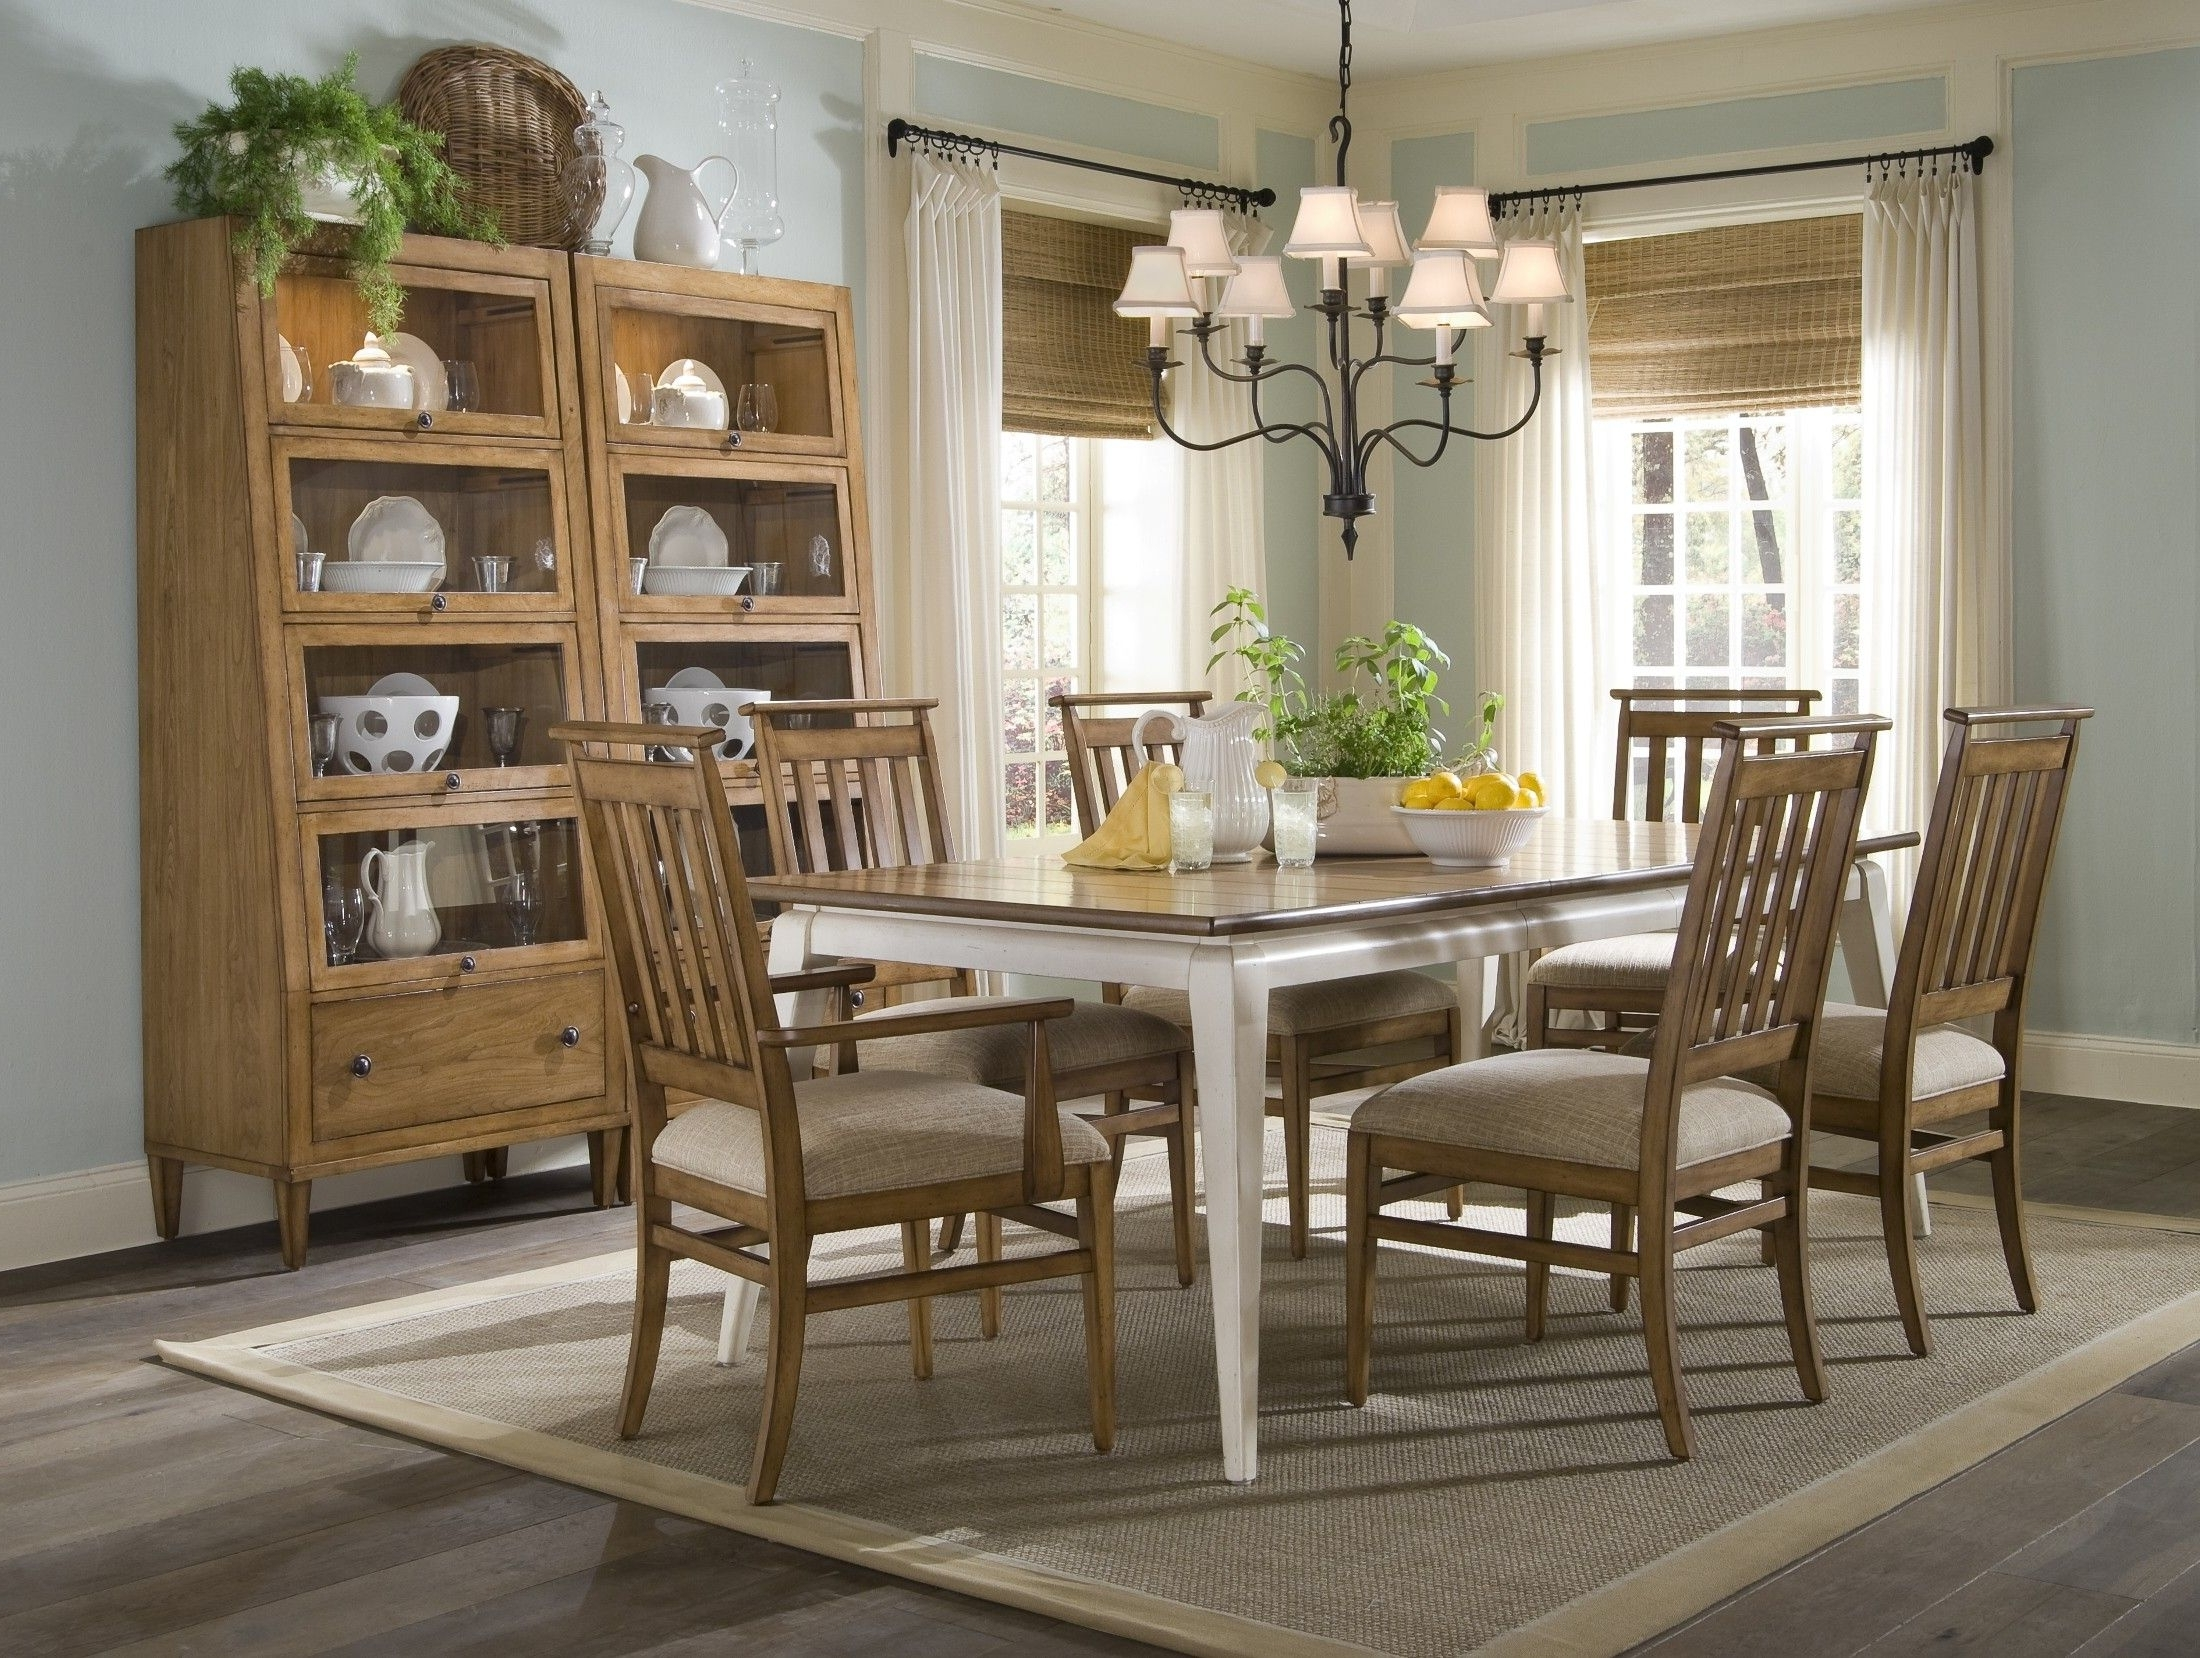 Popular Country Dining Room Furniture Inside Modern Design White Decorating With Norwood 7 Piece Rectangular Extension Dining Sets With Bench, Host & Side Chairs (View 14 of 25)